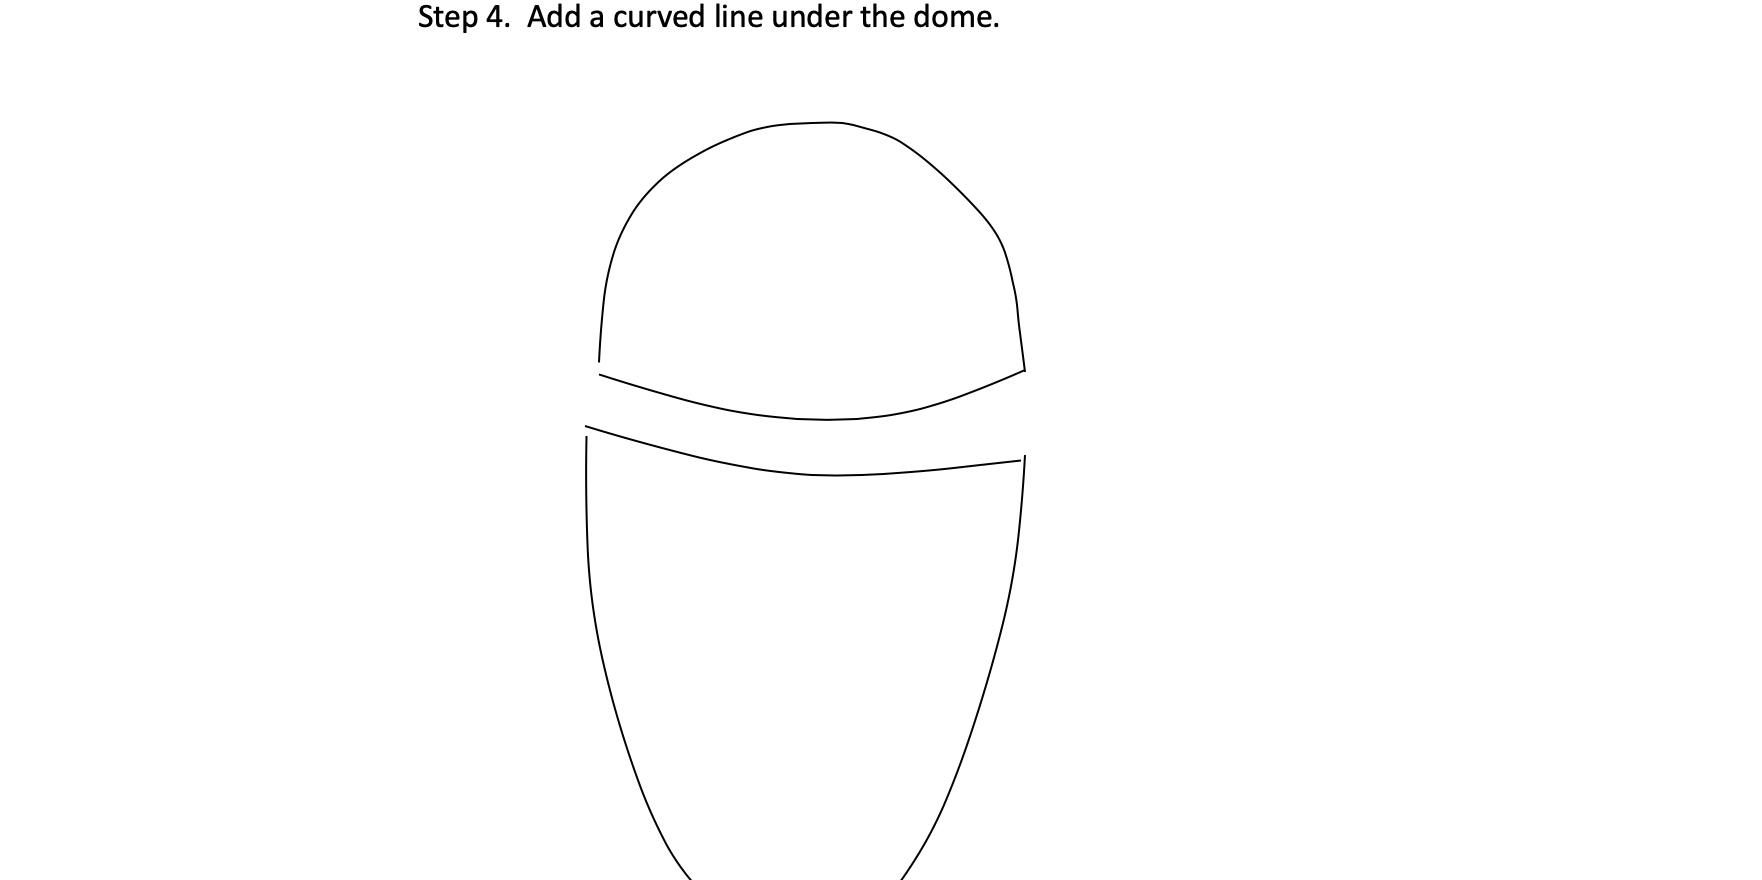 STEP 4 - Add a curved line under the dome